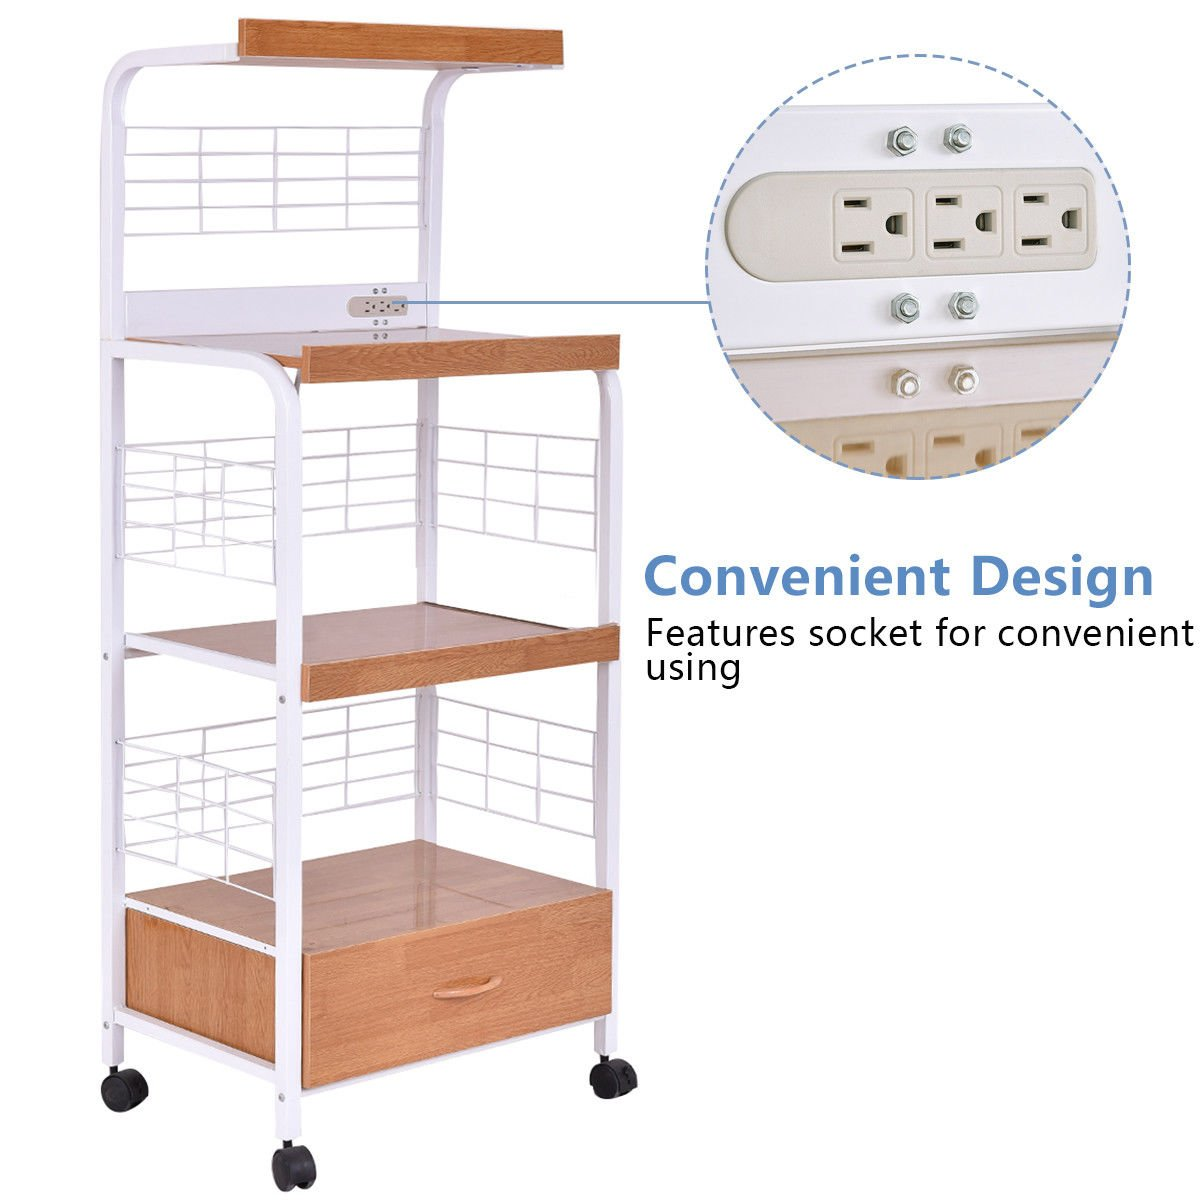 GJH One Bakers Rack Microwave Stand Rolling Kitchen Storage Cart w/Electric Outlet 62'' by GJH One (Image #5)